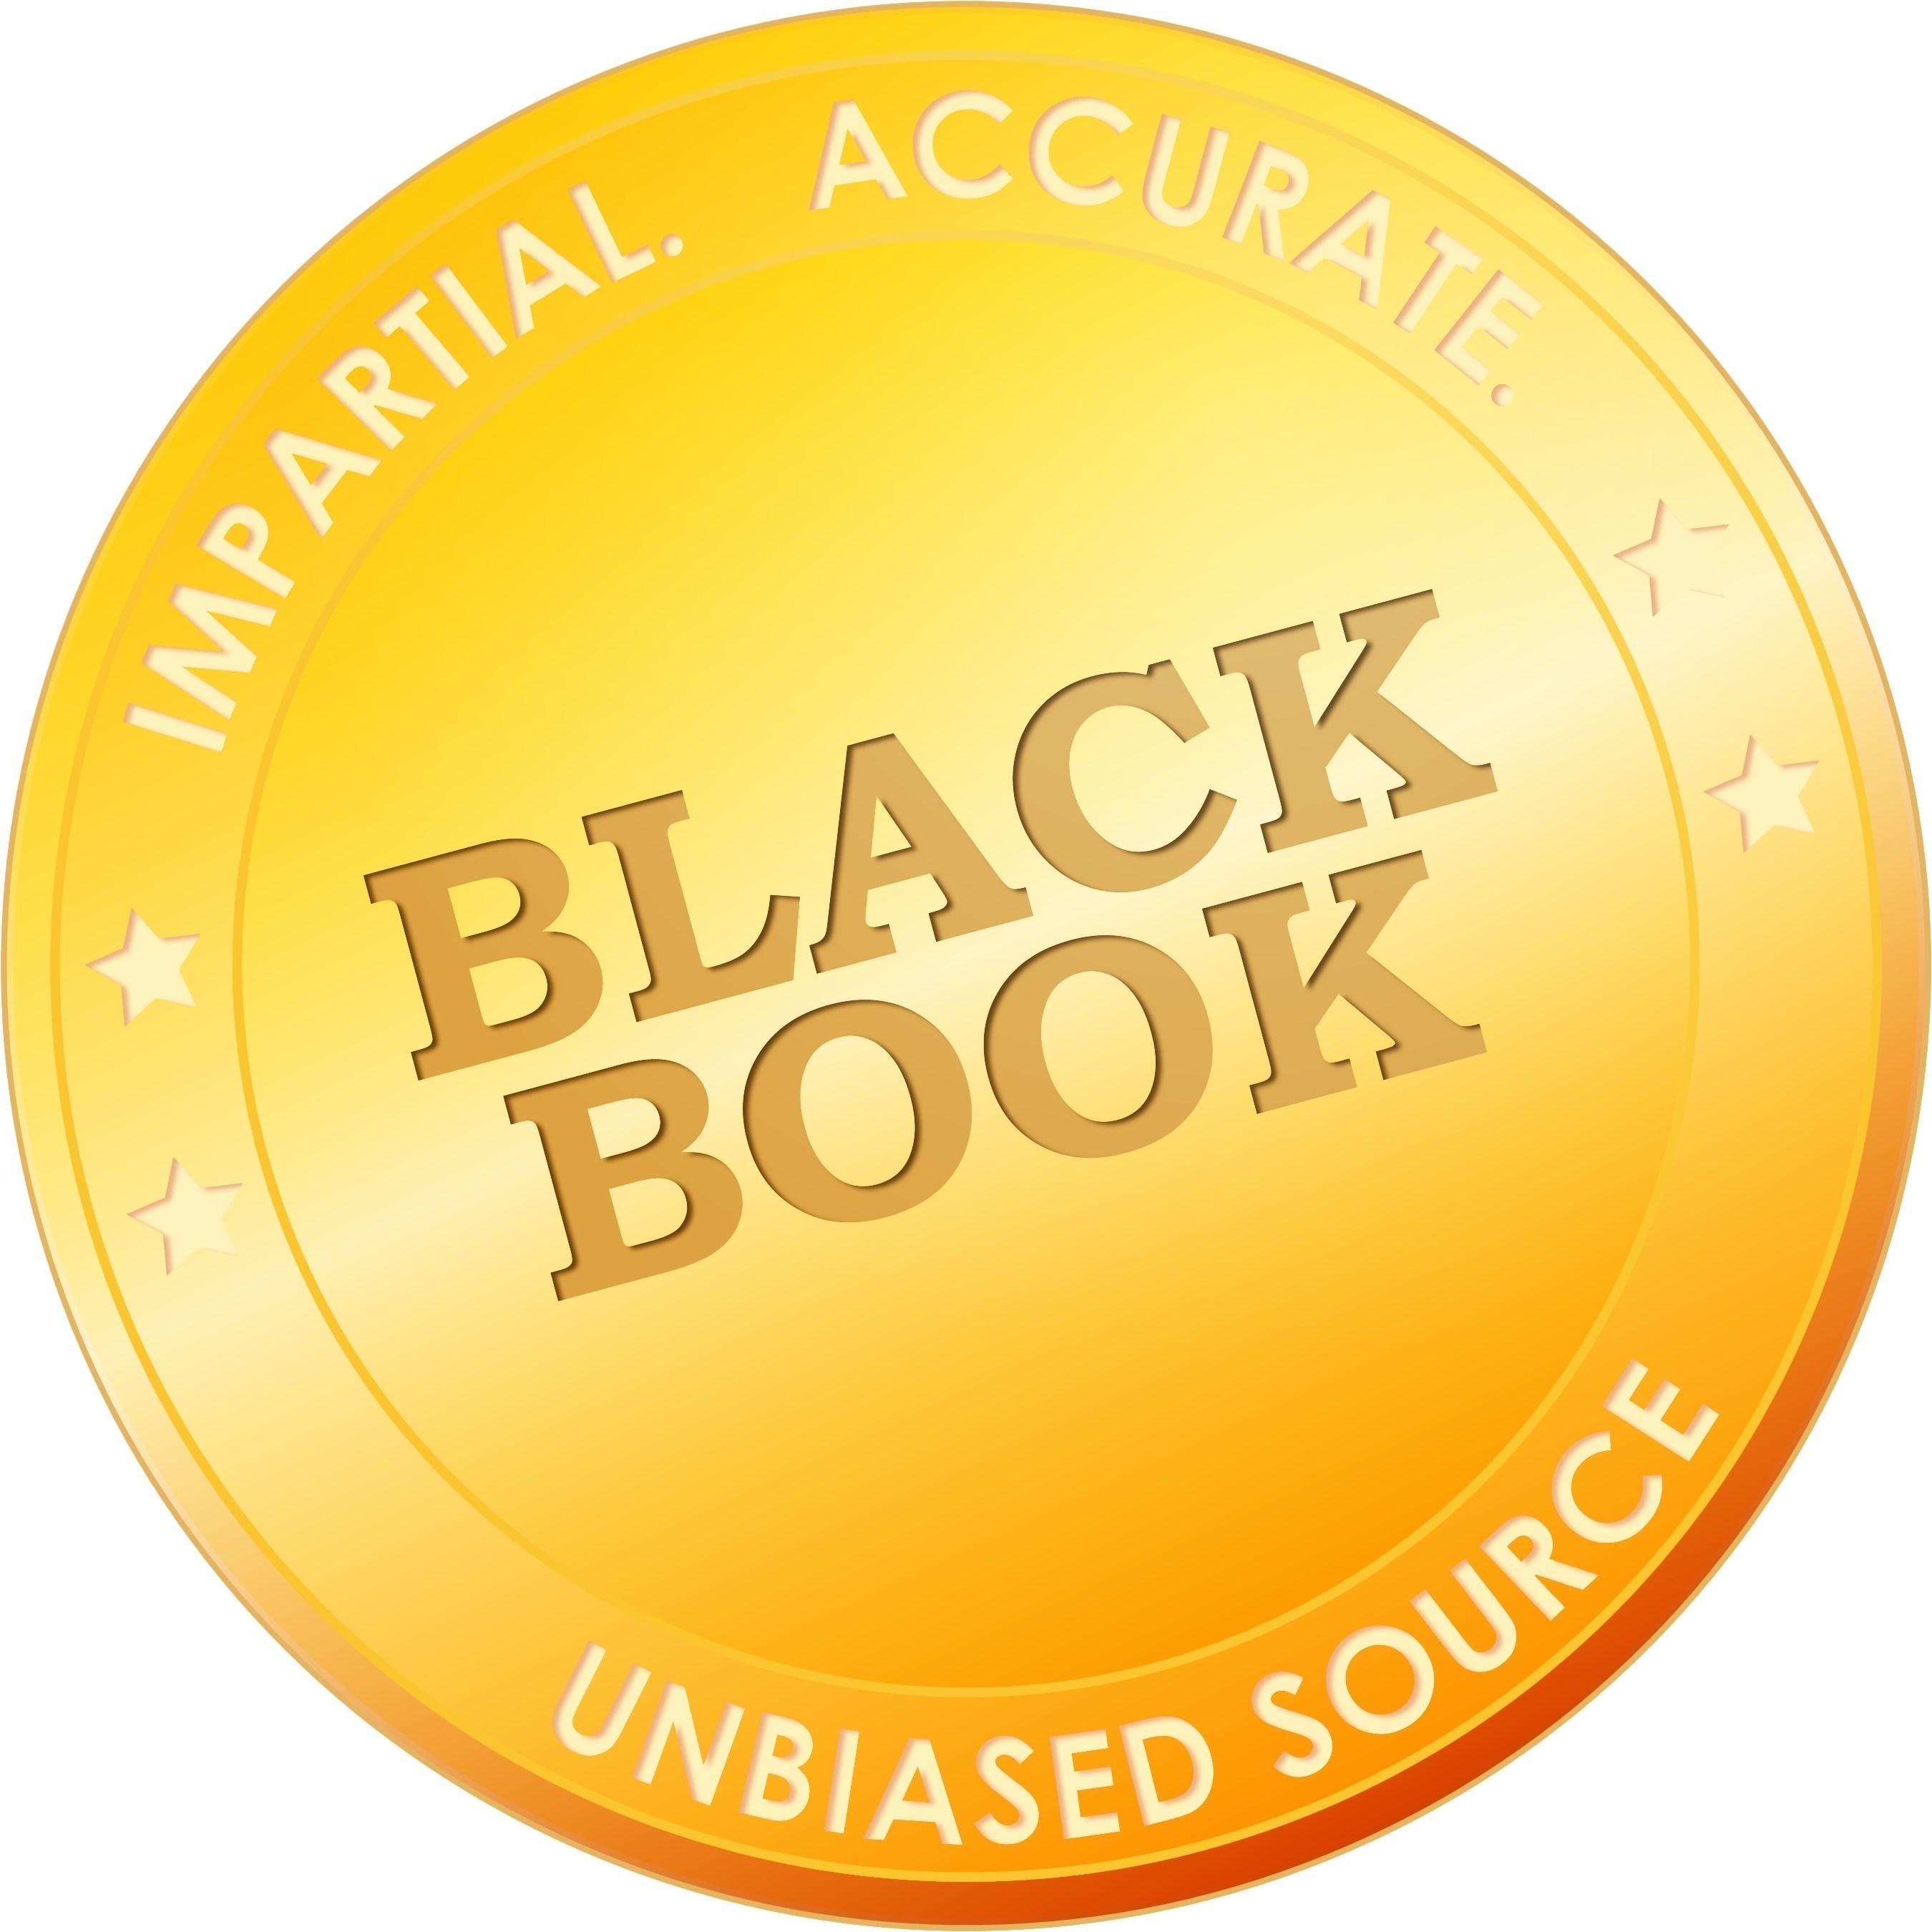 2015 Black Book Survey Announces Drchrono as Top Ranked Mobile Electronic Health Records